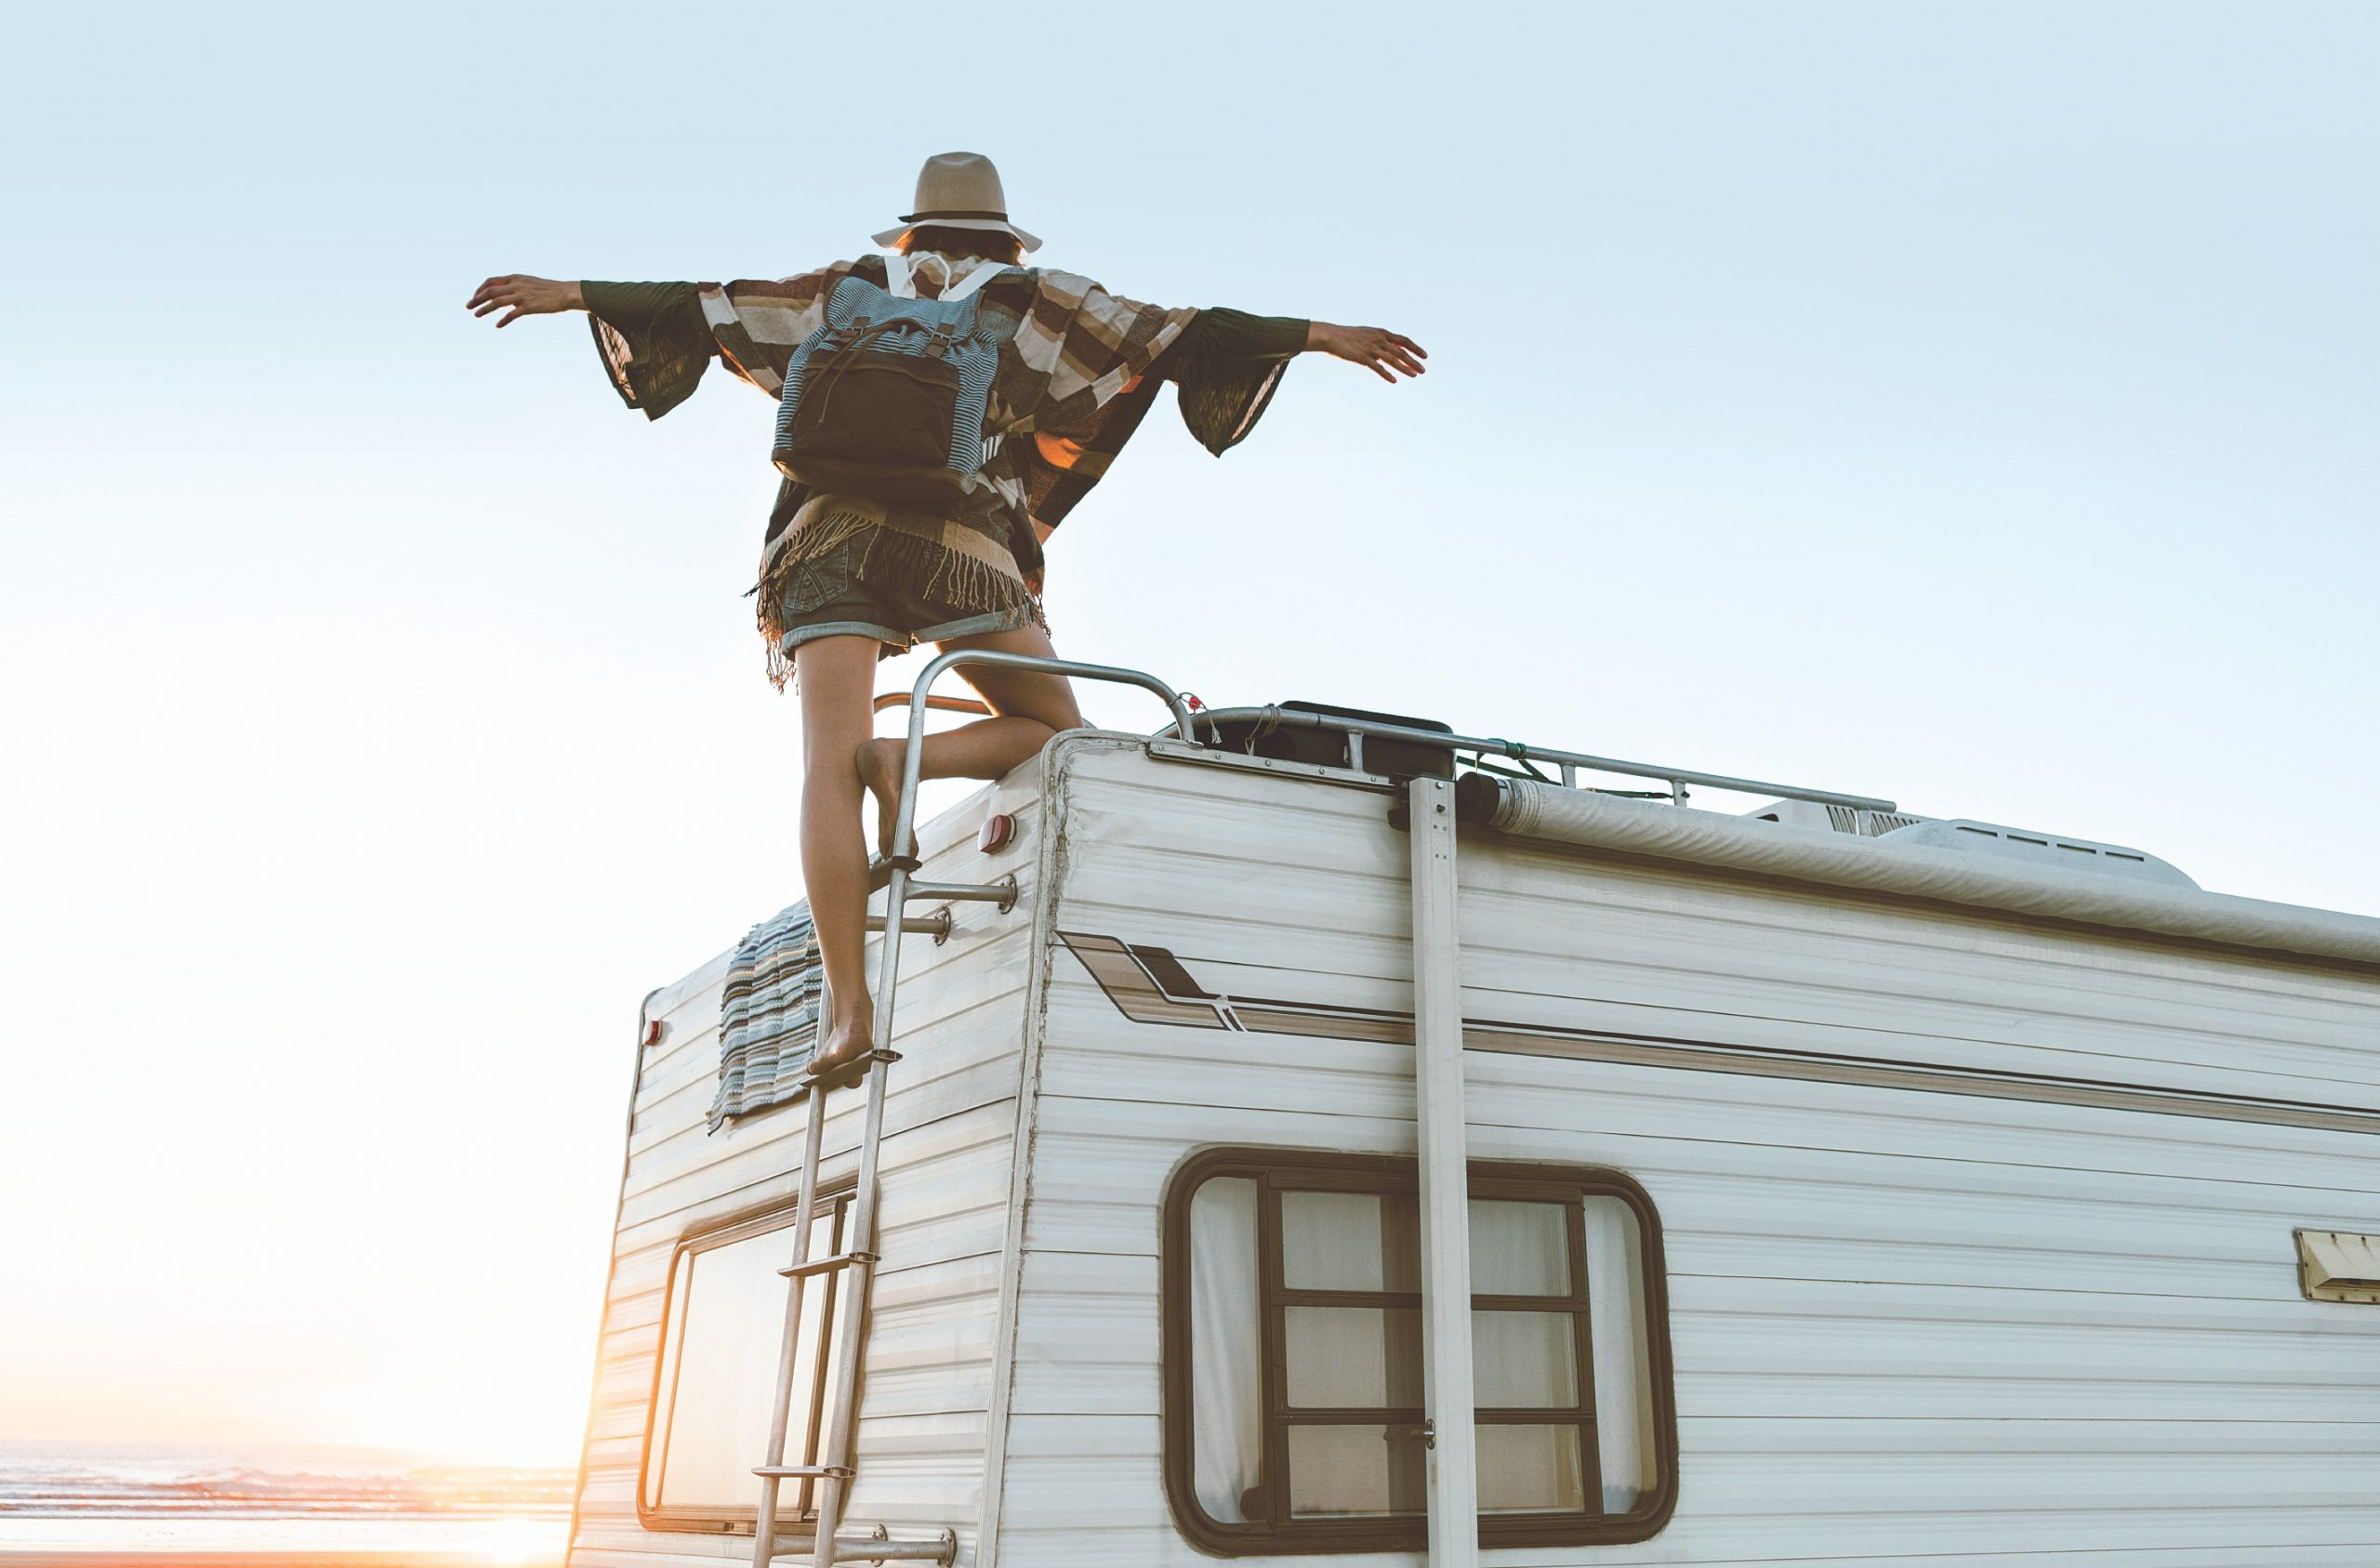 Charming girl with hat, poncho, backpack standing on roof of recreational vehicle on the ocean beach at sunset.